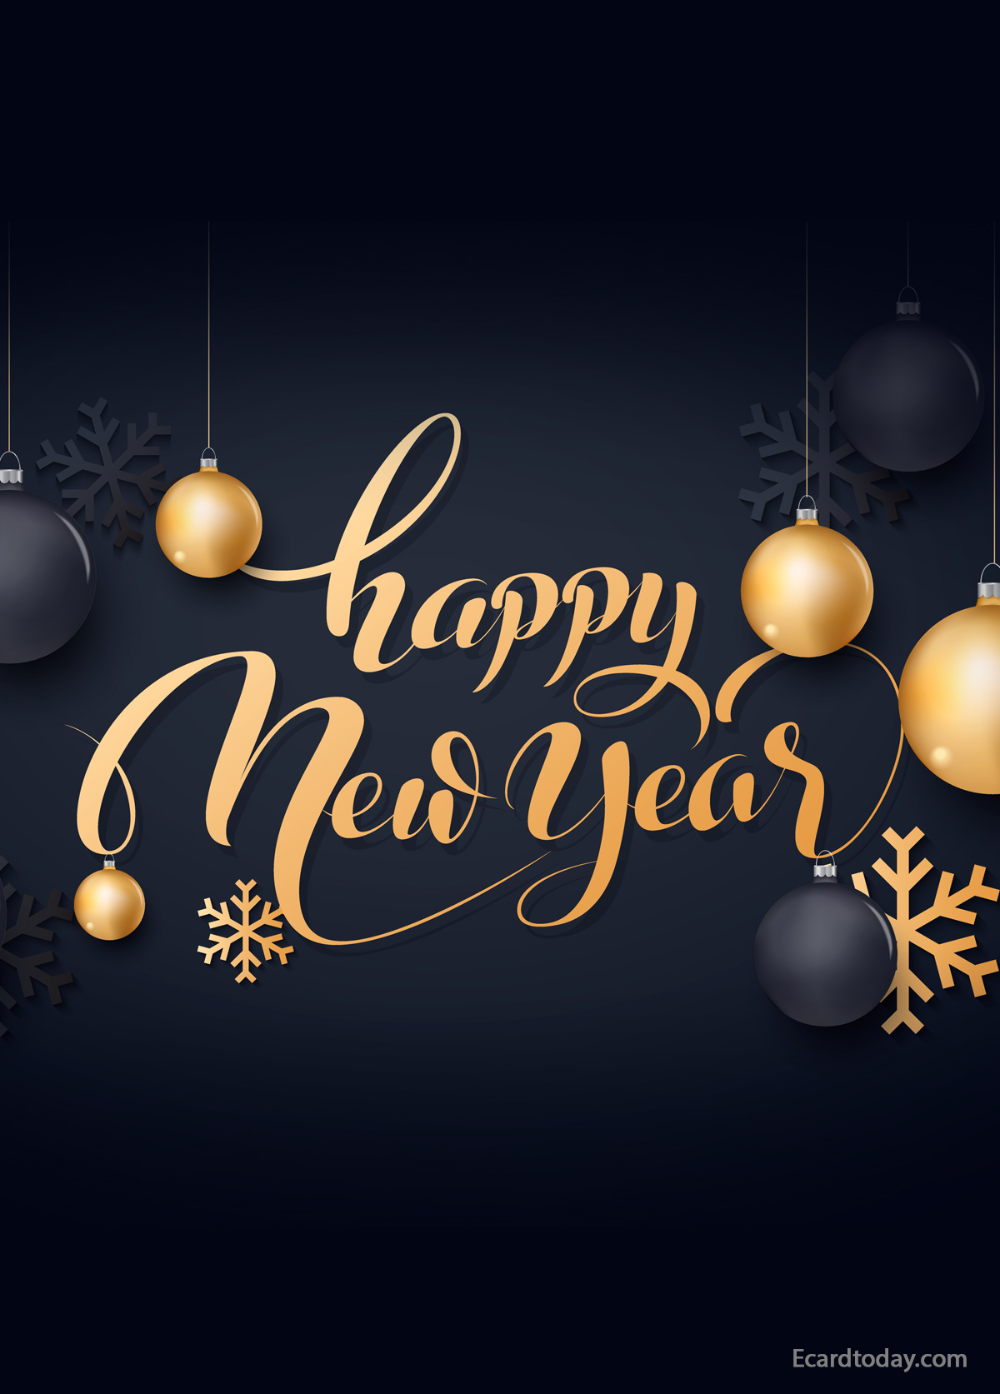 Best Happy New Year Images 2020 (With images) Happy new